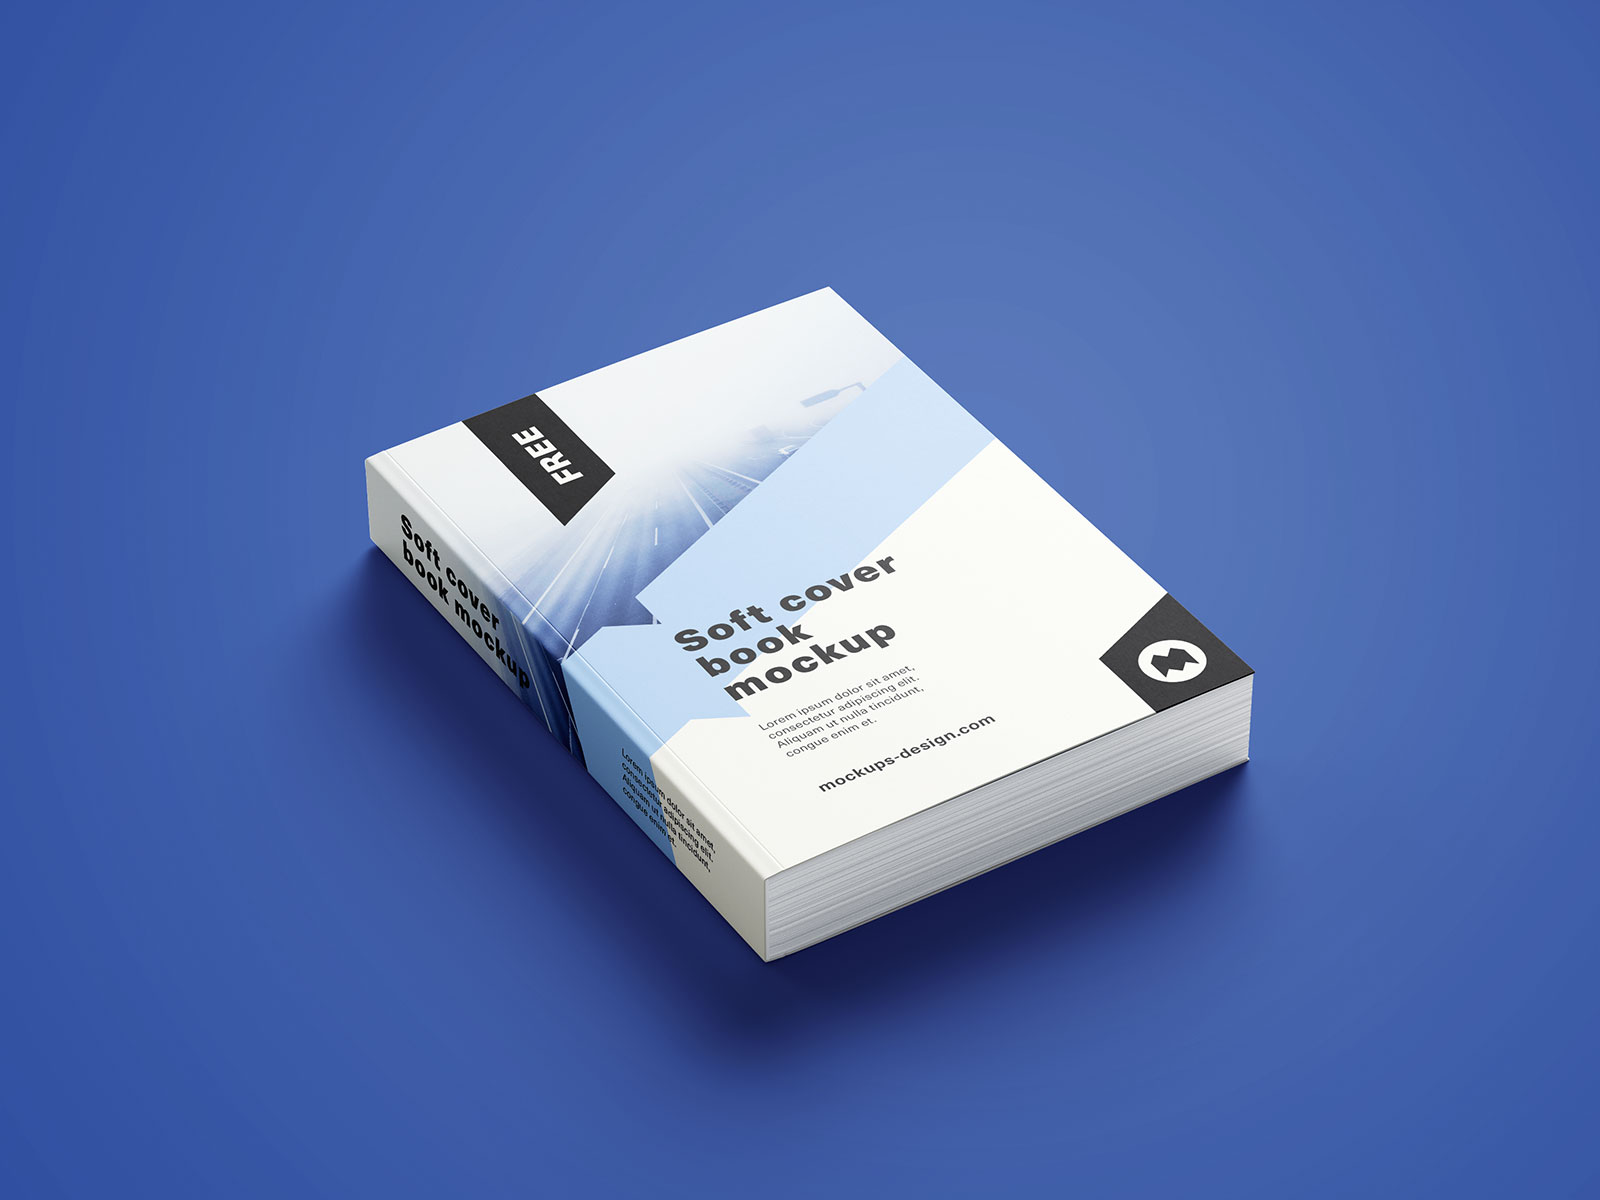 Softcover Book Mockup PSD (1)